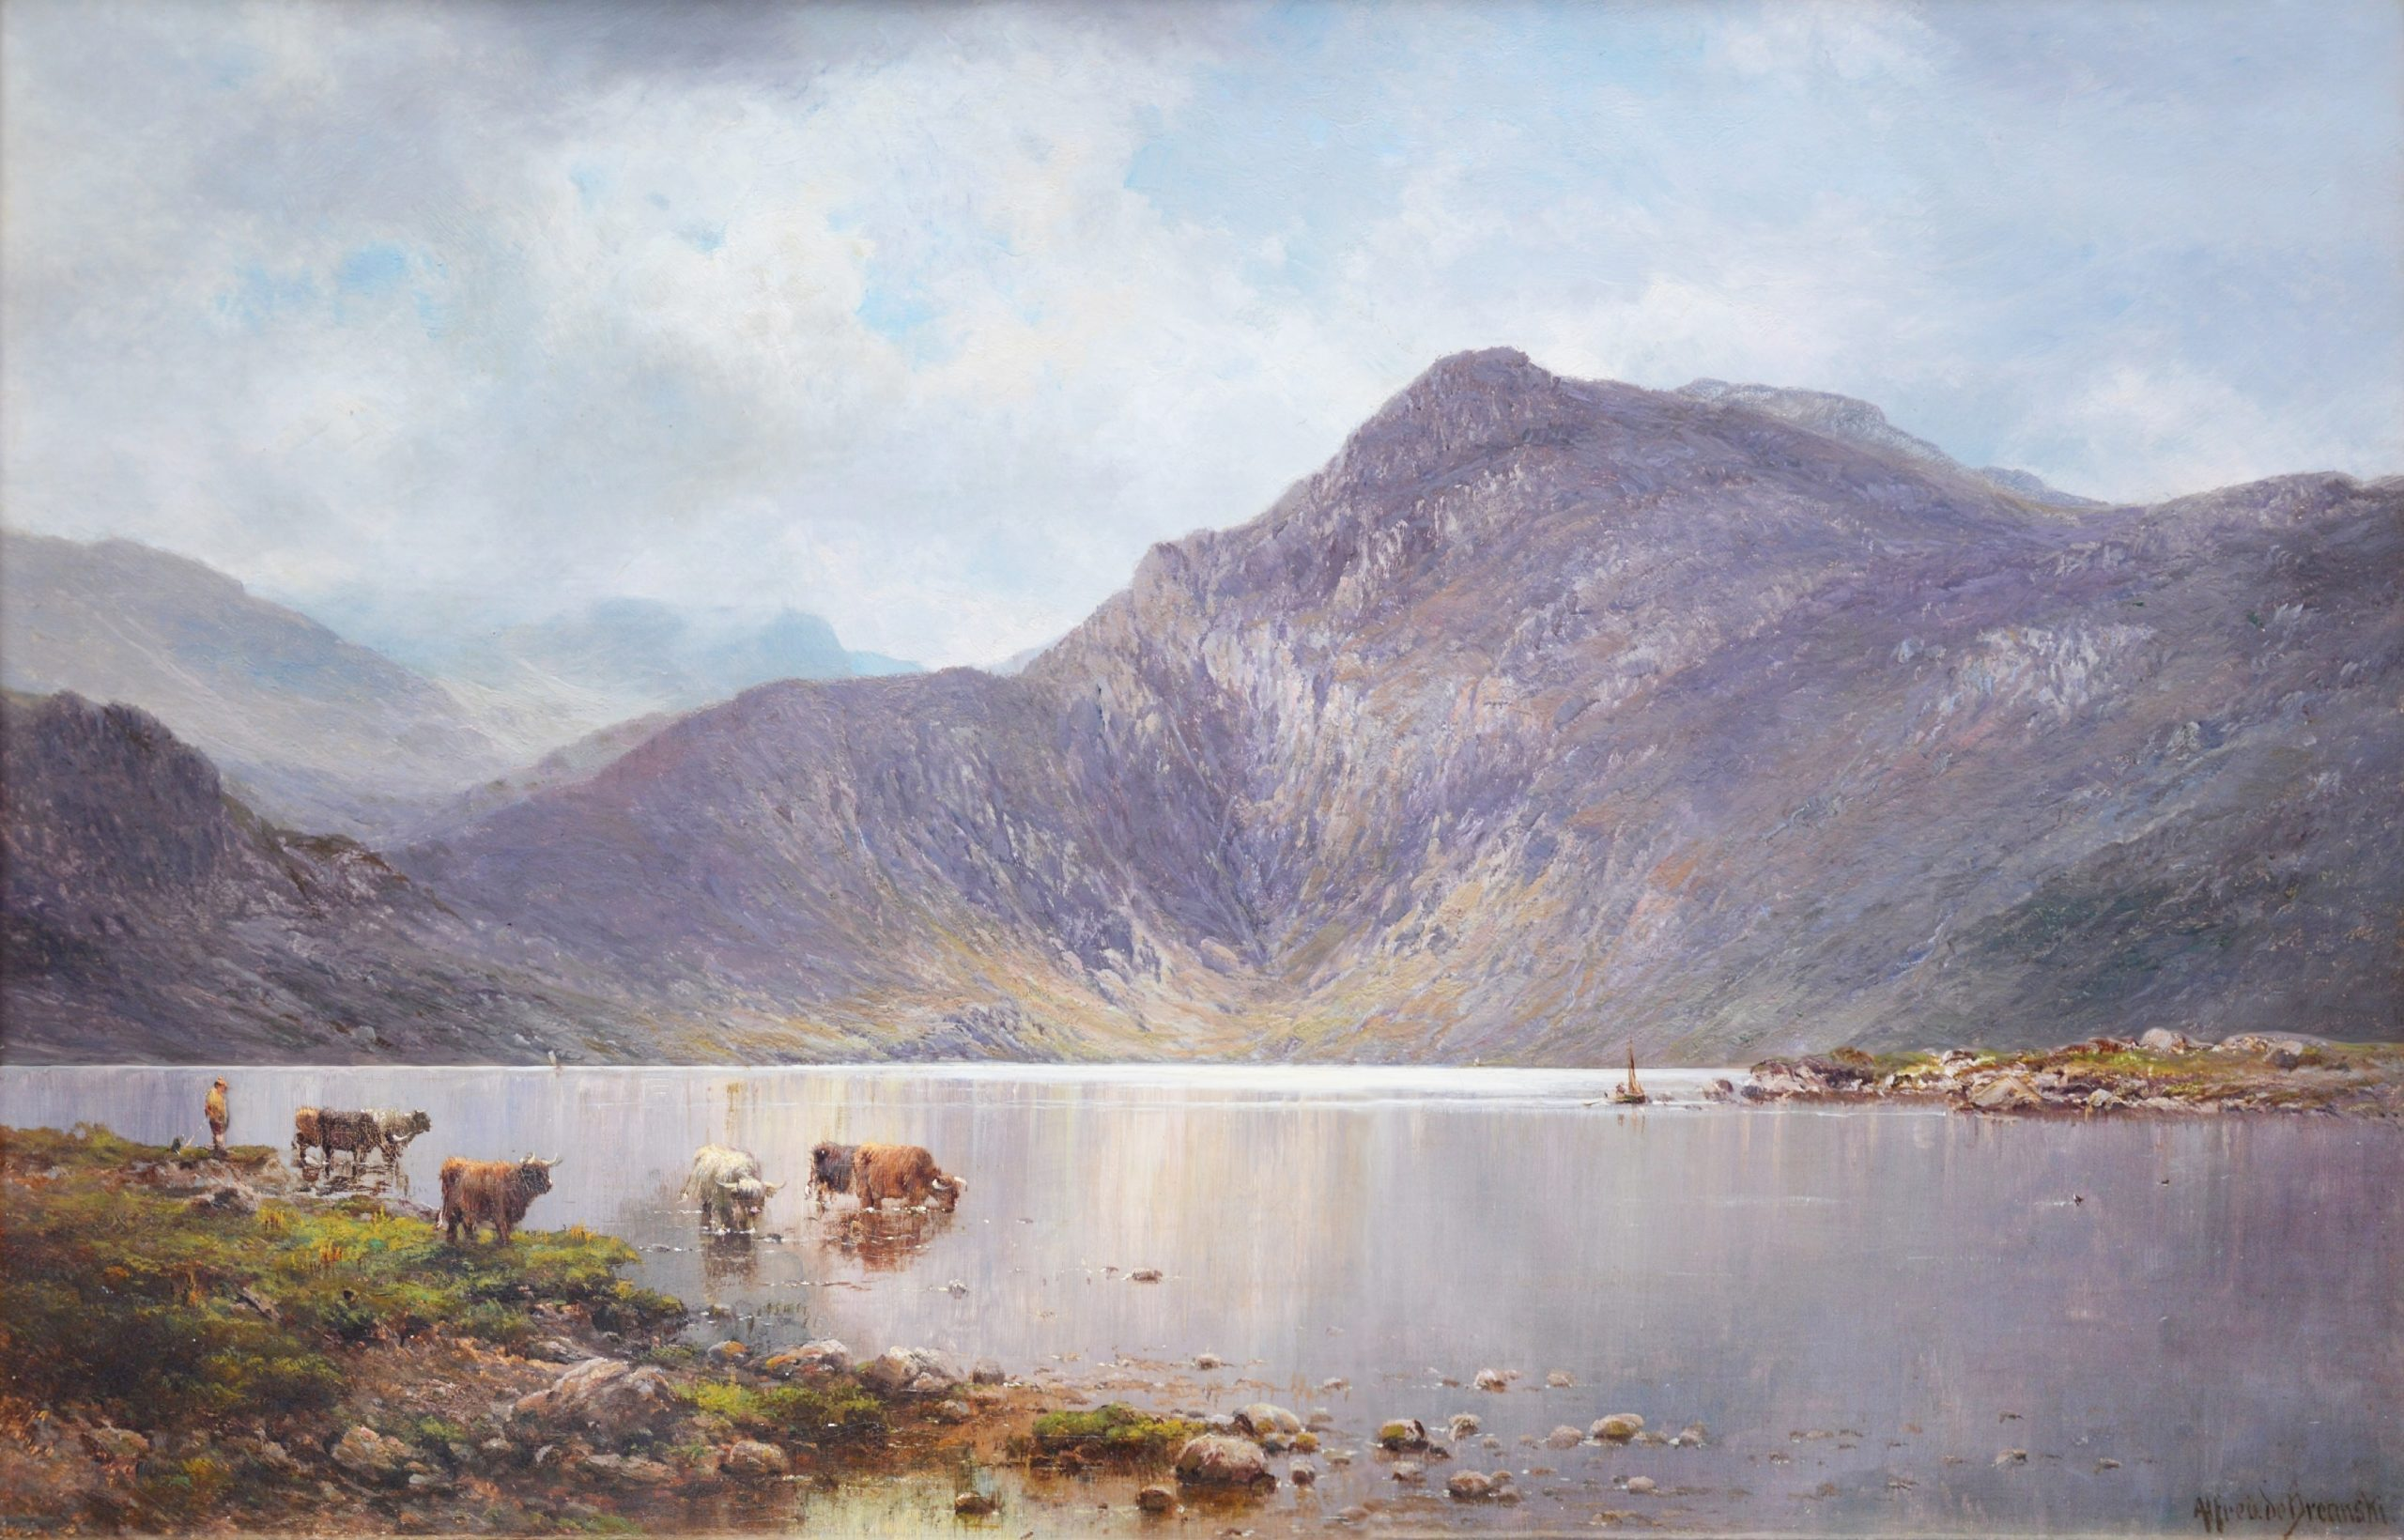 Lochnagar - 19th Century Landscape Oil Painting of the Scottish Highlands Image